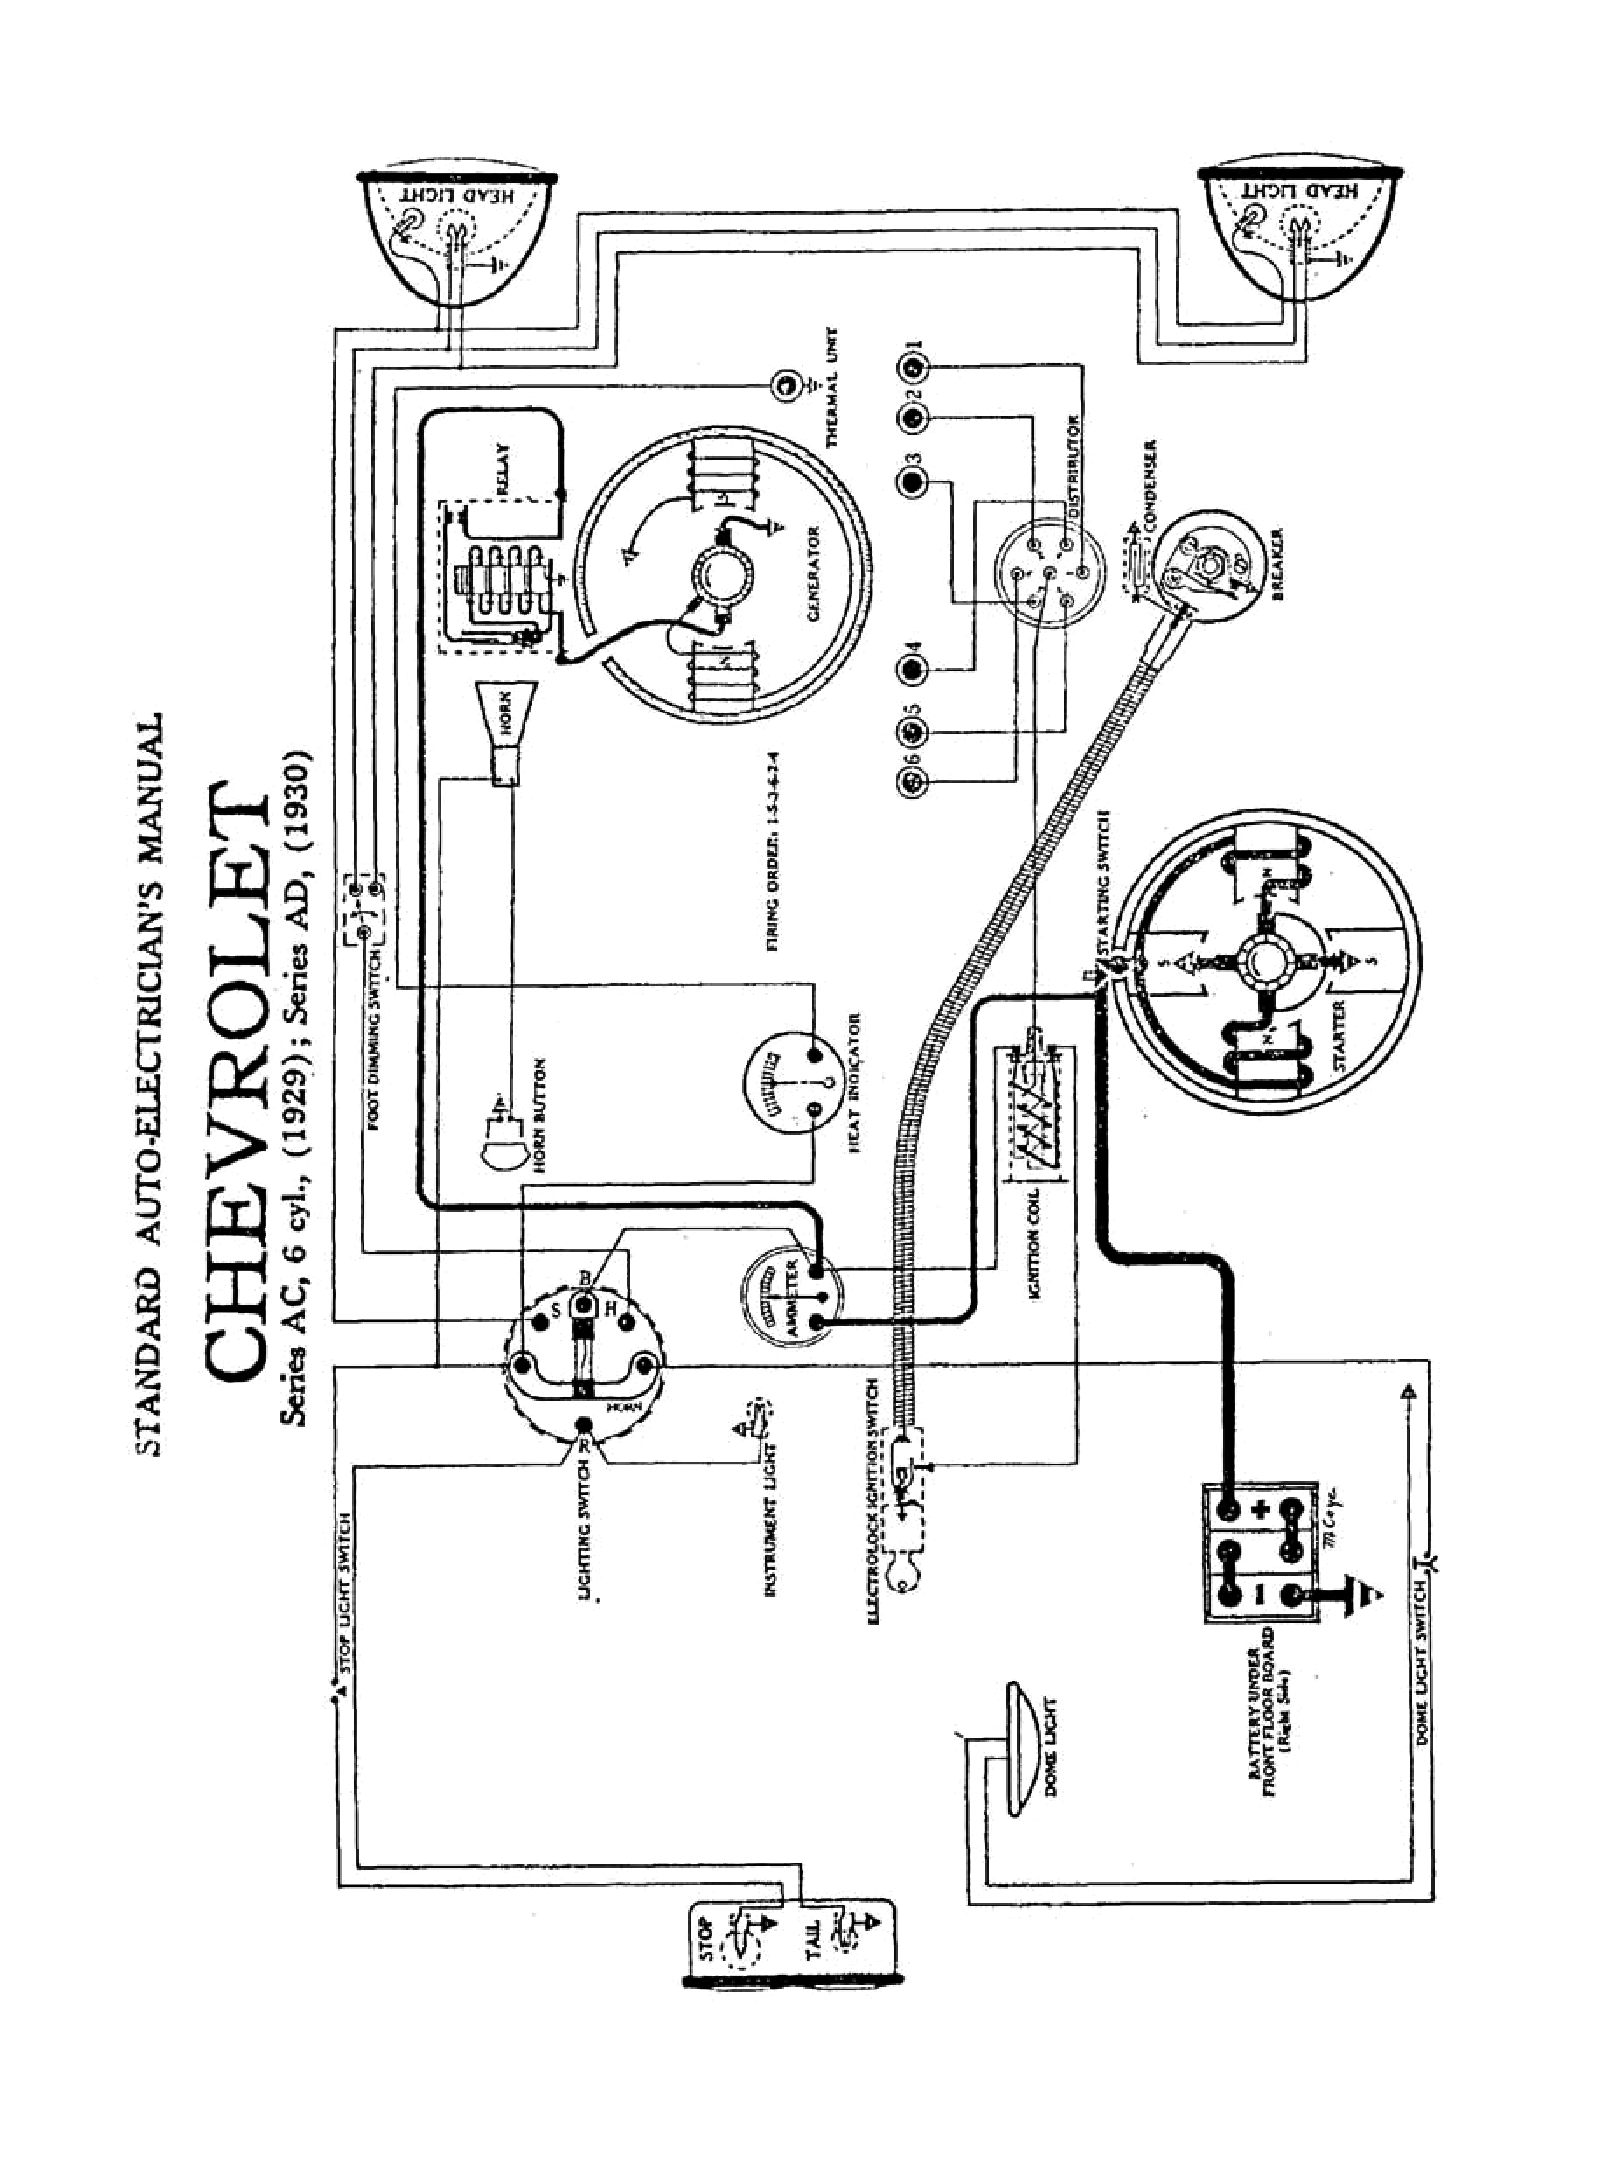 Chevy Wiring Diagrams Ac Codes 1929 Series Model